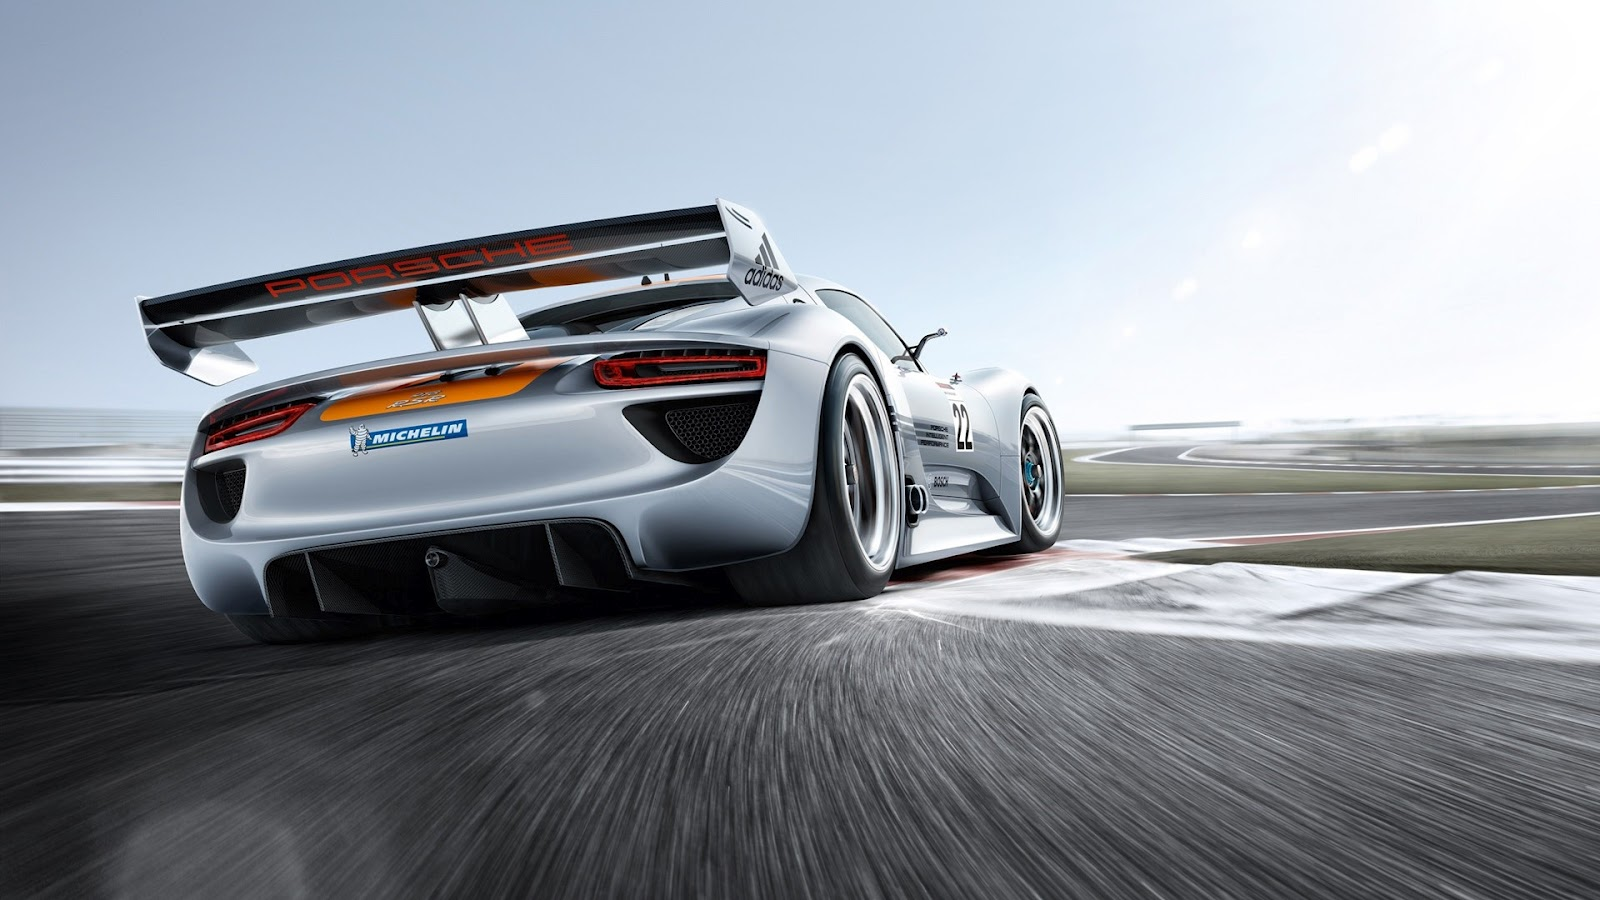 Porsche 918 RSR porsche f1 racing modified car 1920x1080 2013 En Güzel HD Modifiyeli Araba Resimleri